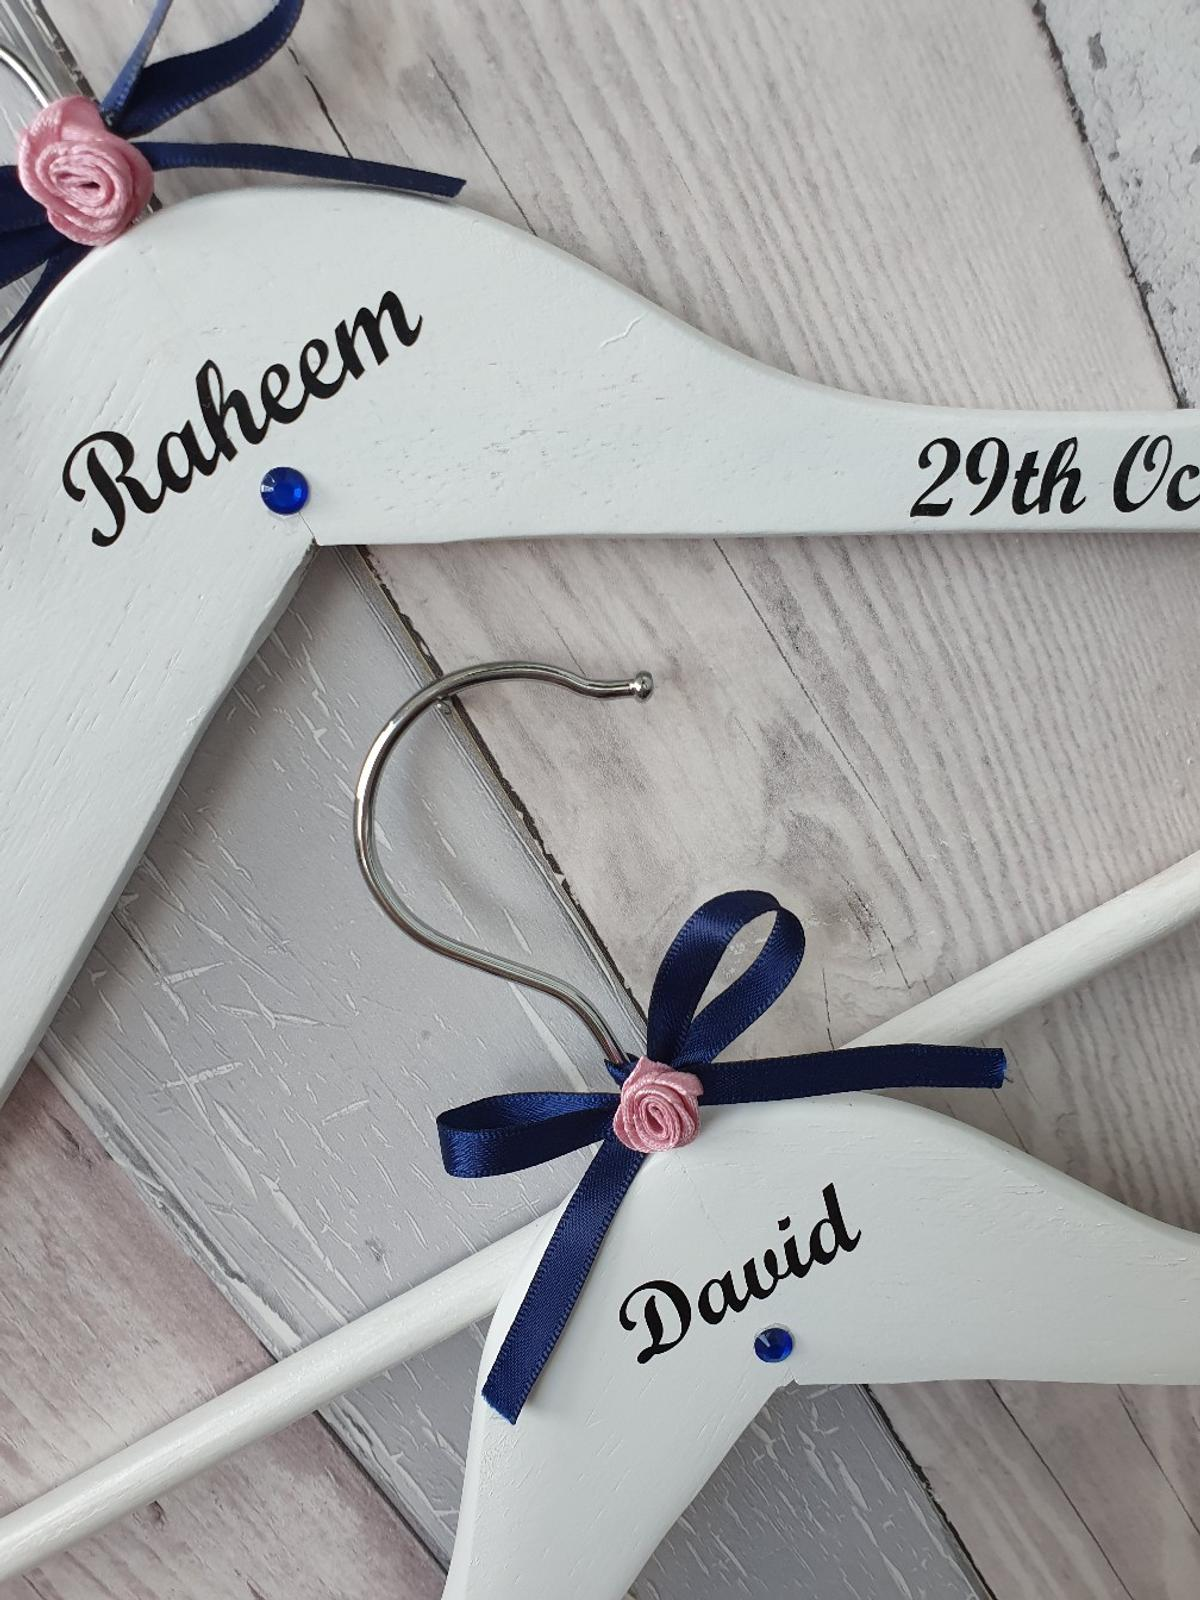 Great for a personal touch for weddings, christenings, birthdays etc 🥂  Many colour variations for text and text can be customised to what you want.  Ribbons, diamanté's, flowers decorative items can be any colour you wish, add more or as less decorative items as you wish ⭐️  £4.50 Each  Please see my other items for sale 💗